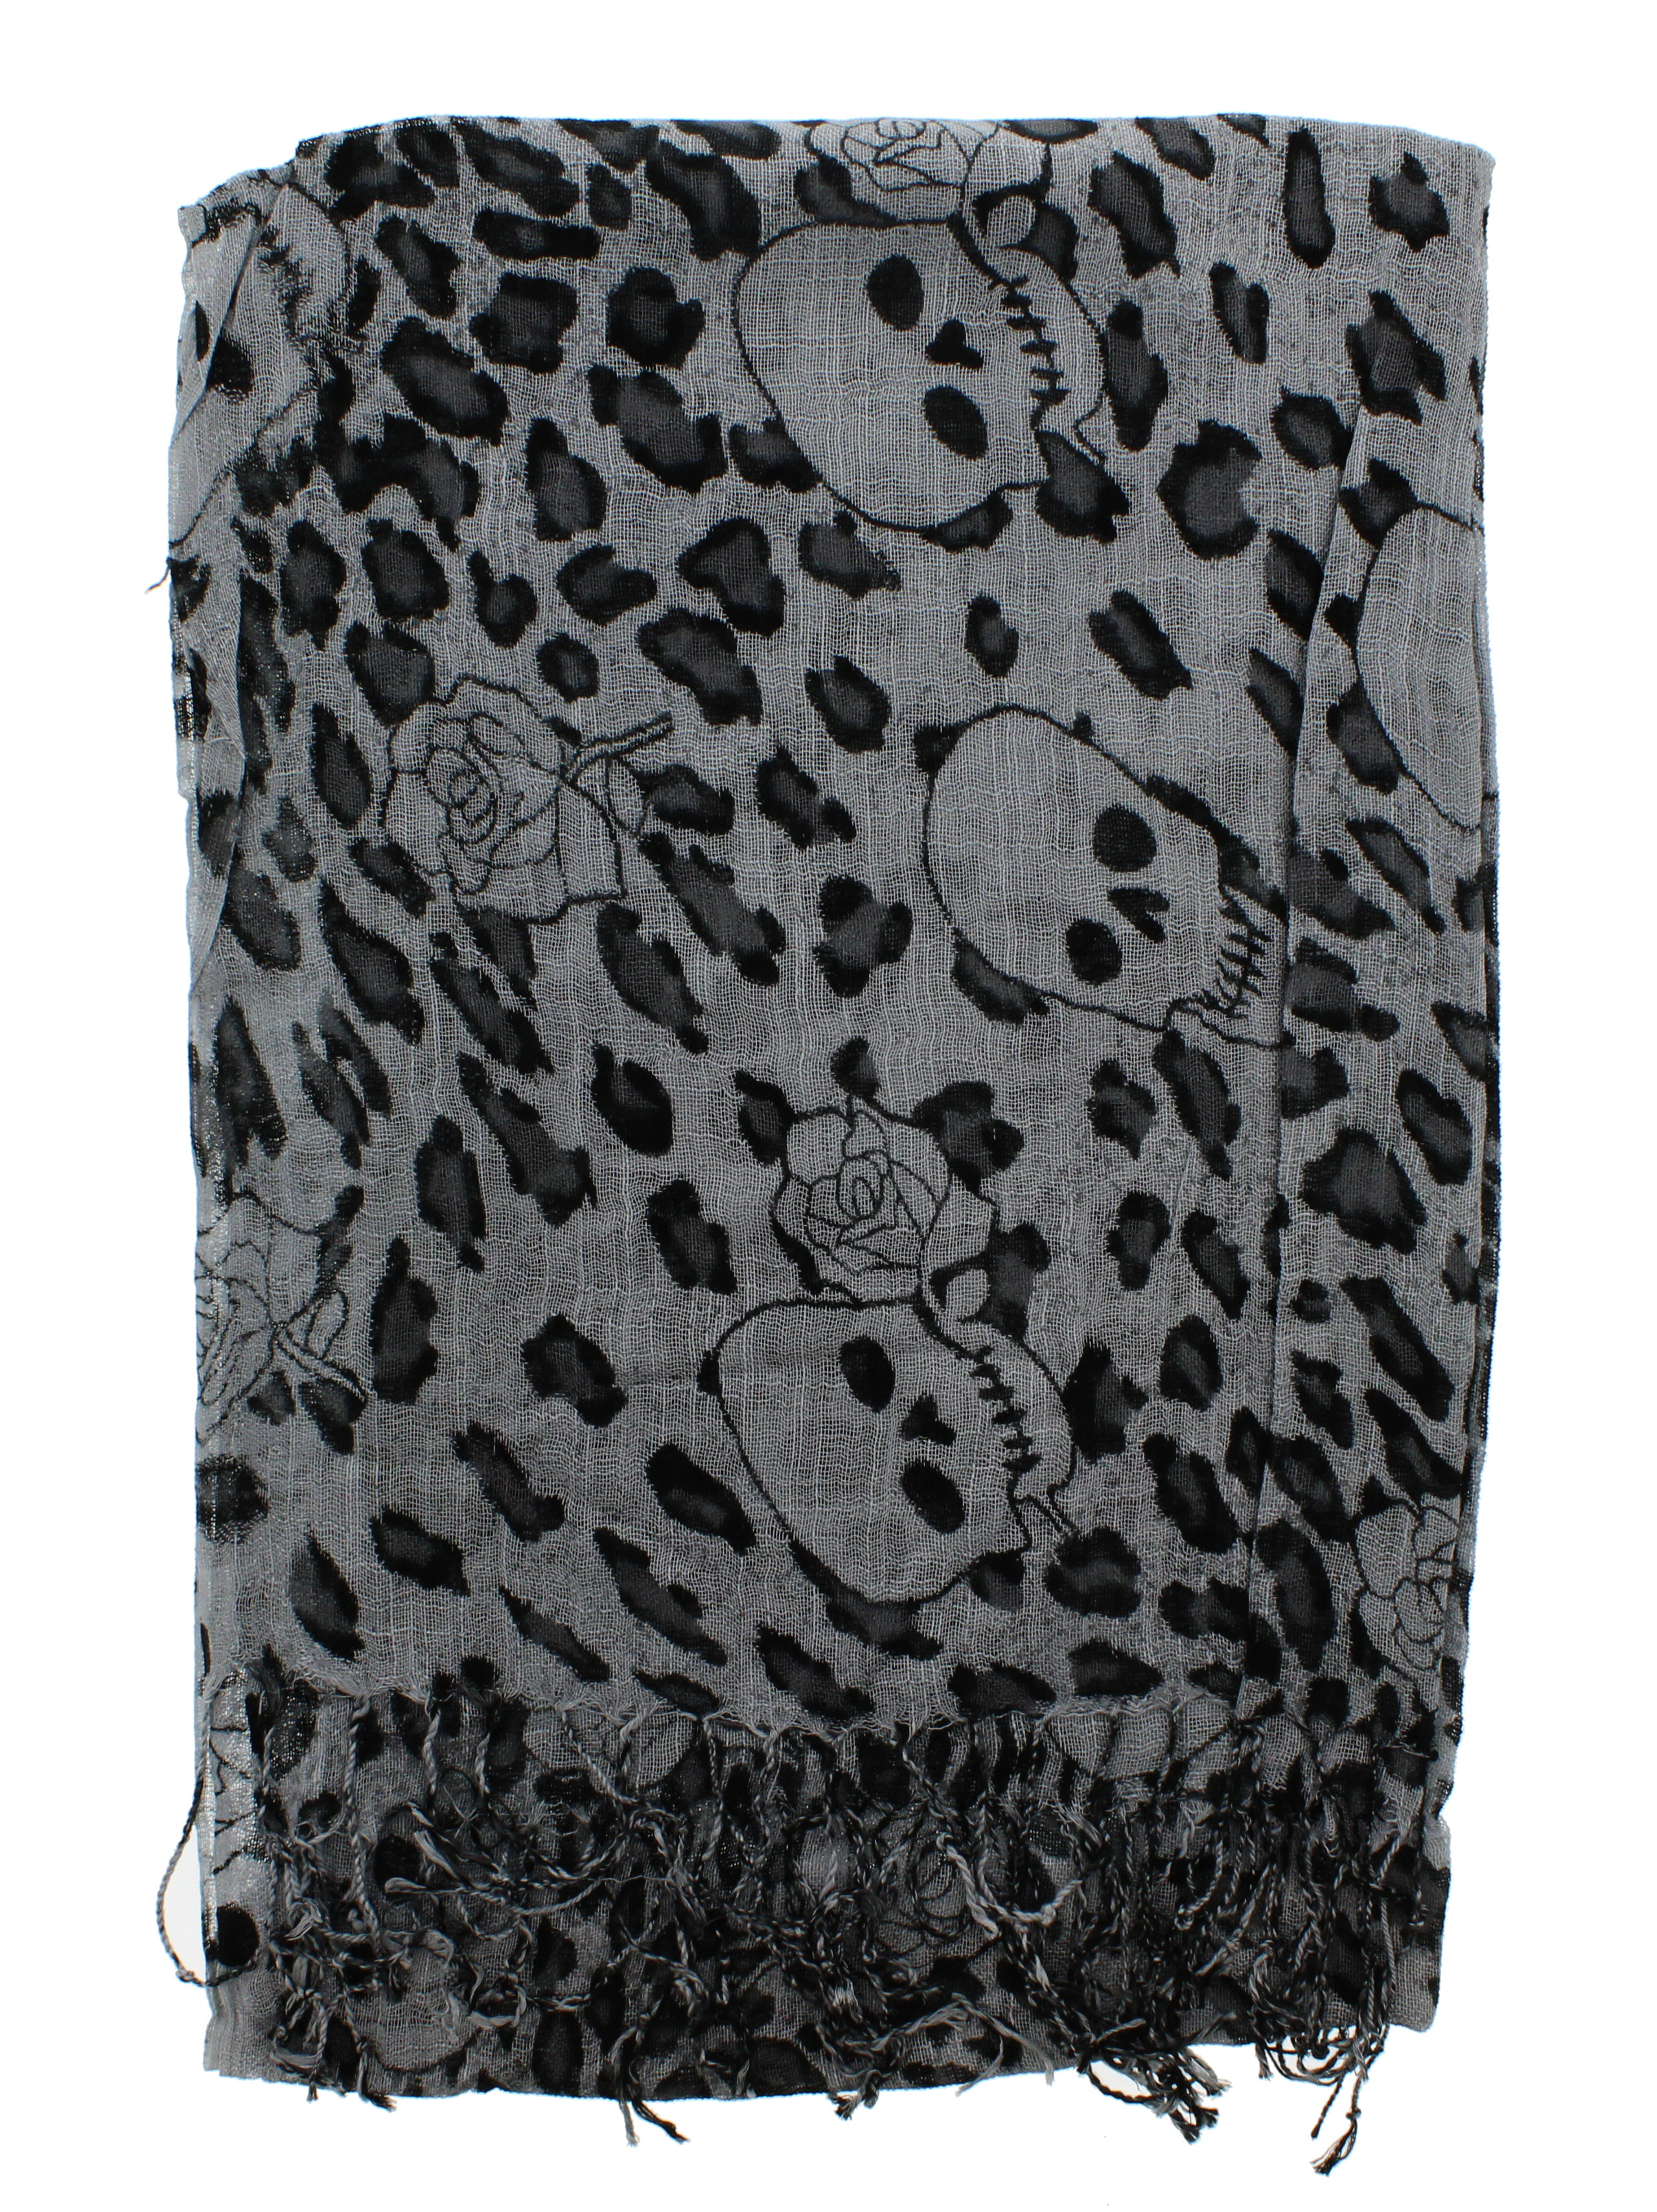 Zac/'s Alter Ego Long Lightweight Scarf with Skulls Roses /& Leopard Print